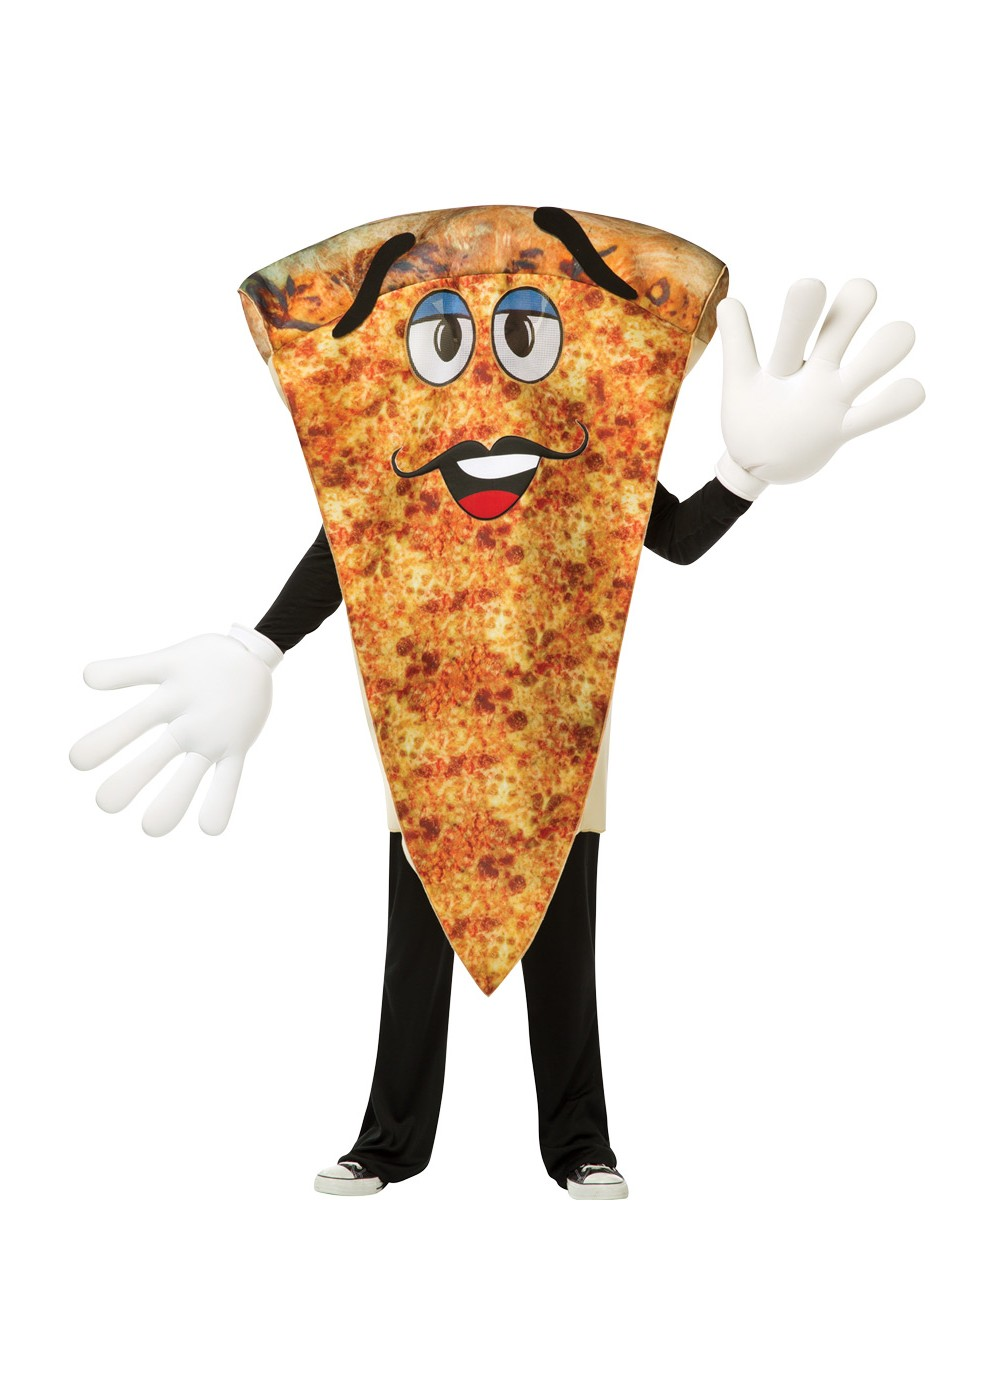 Pizza Mascot Costume